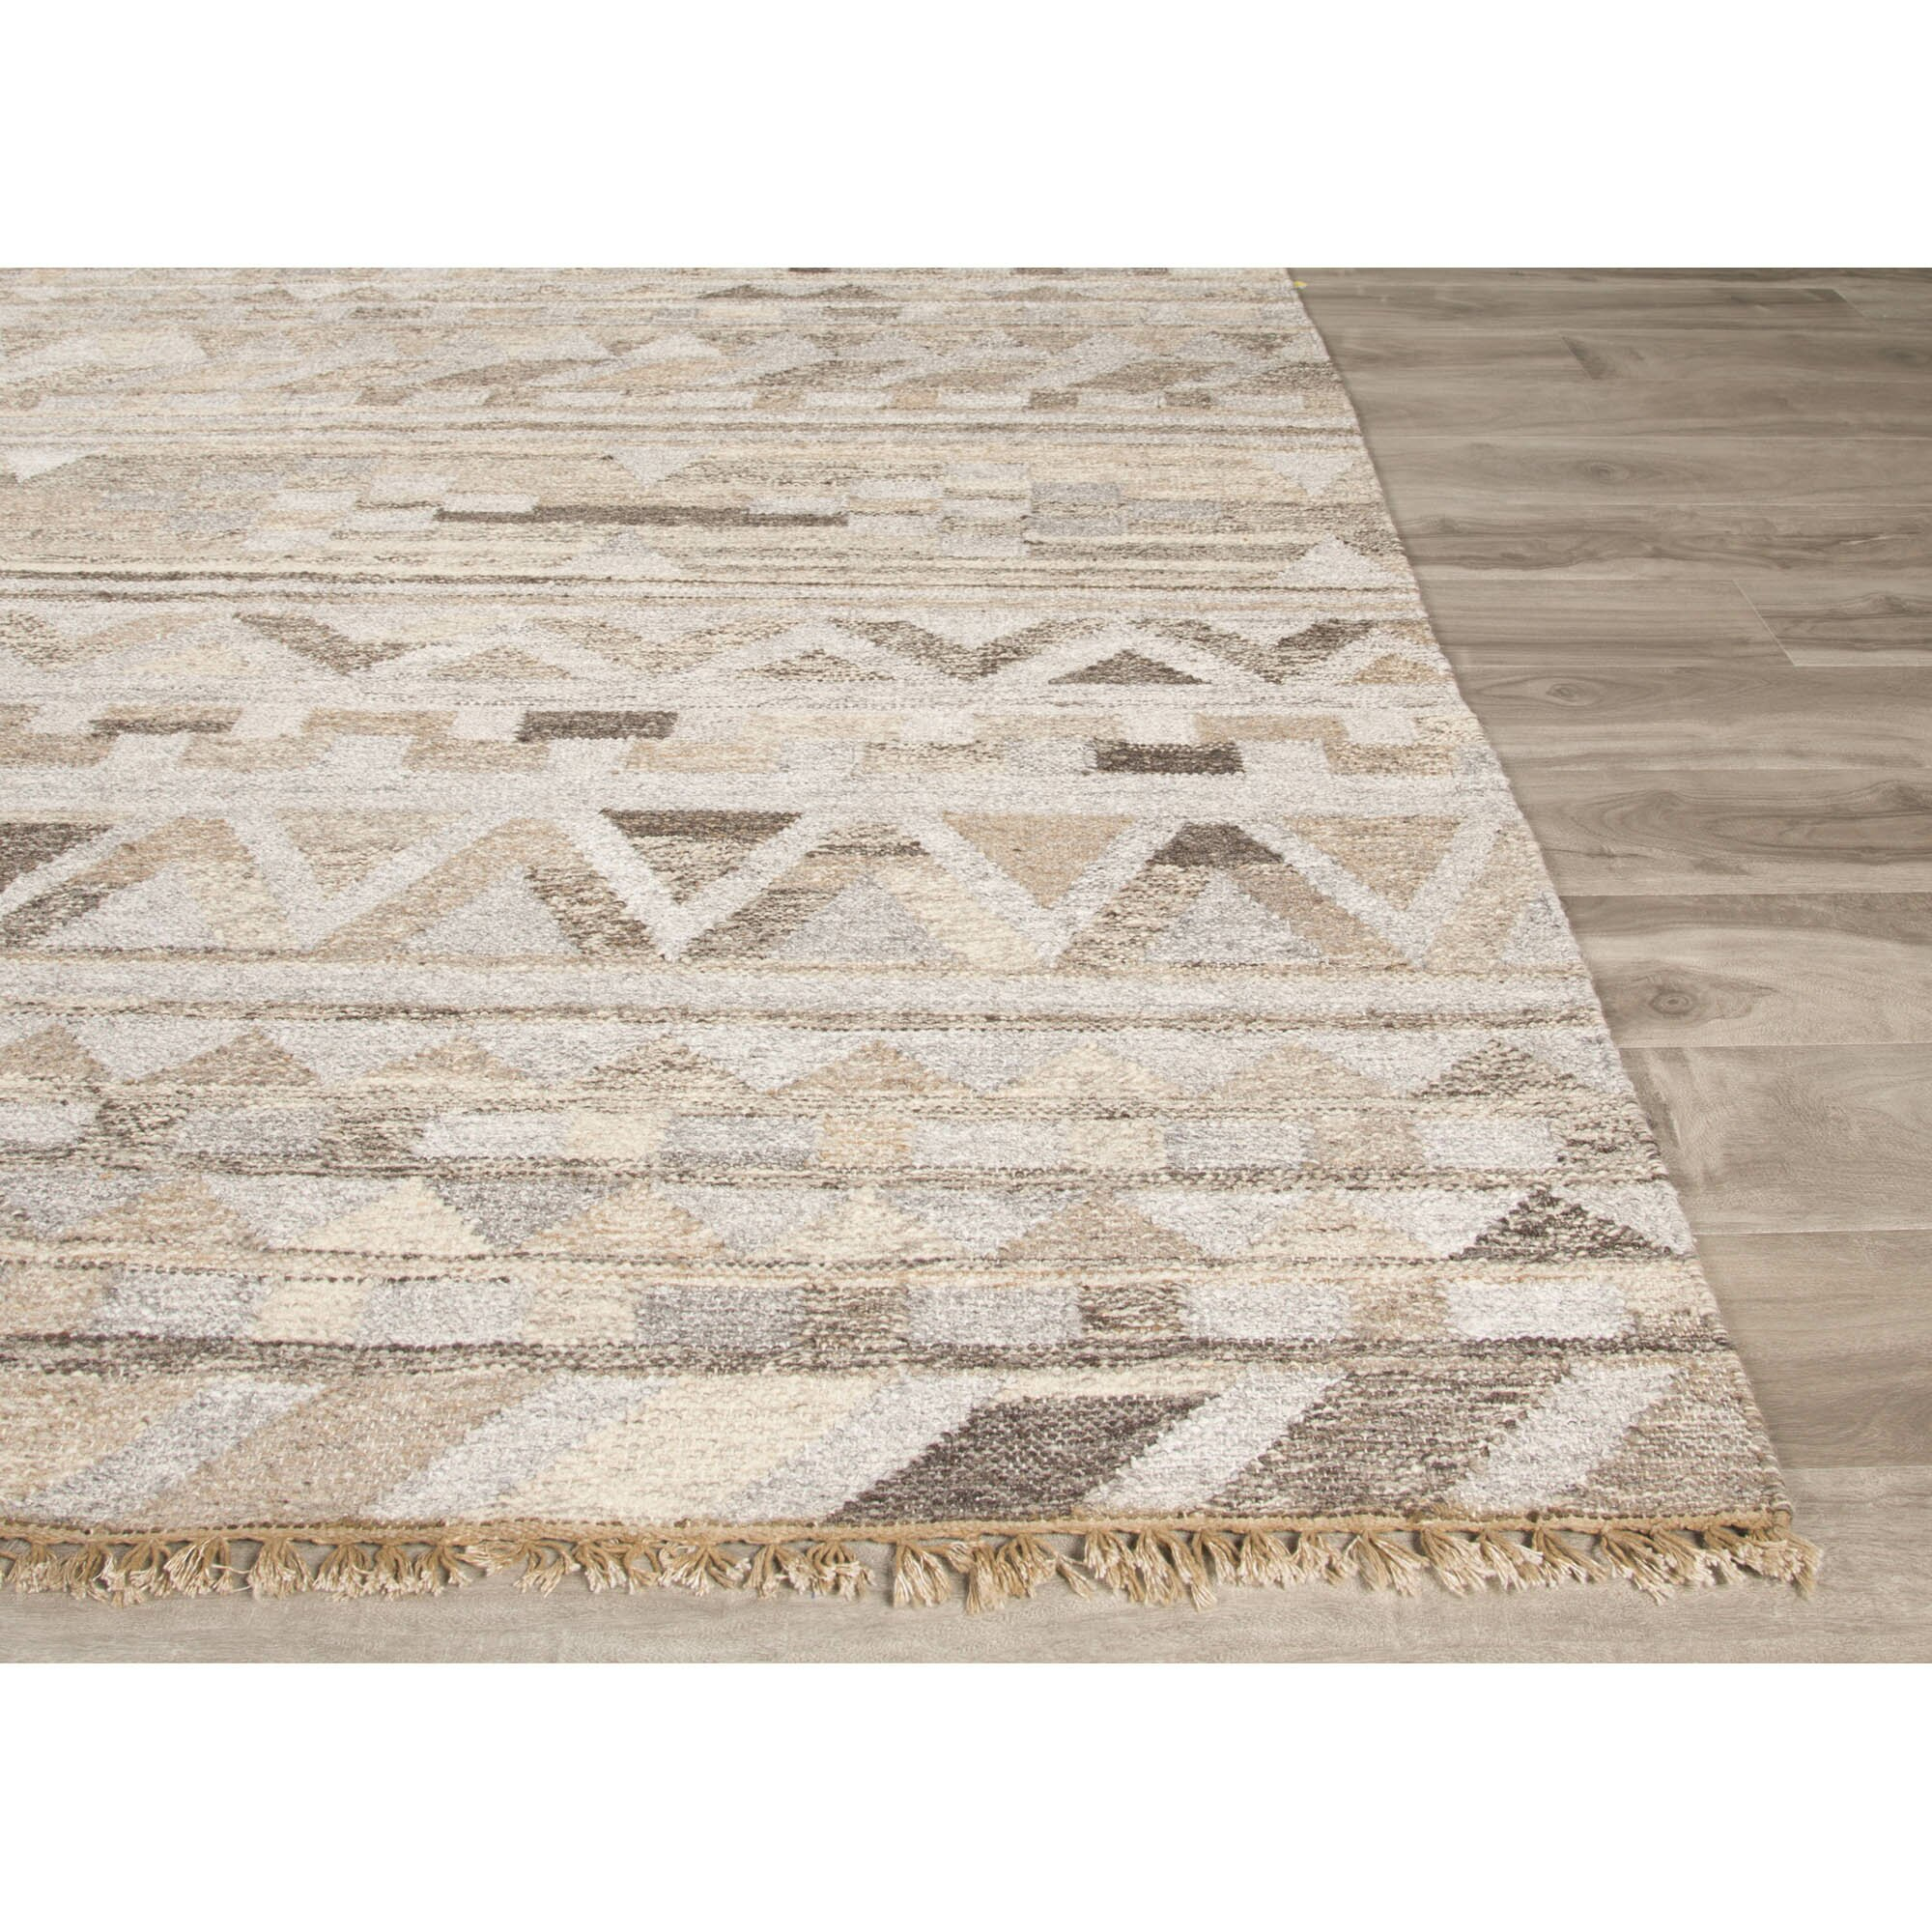 Gray Taupe And White Bedroom Curatins: JaipurLiving Prescot Gray/Taupe Area Rug